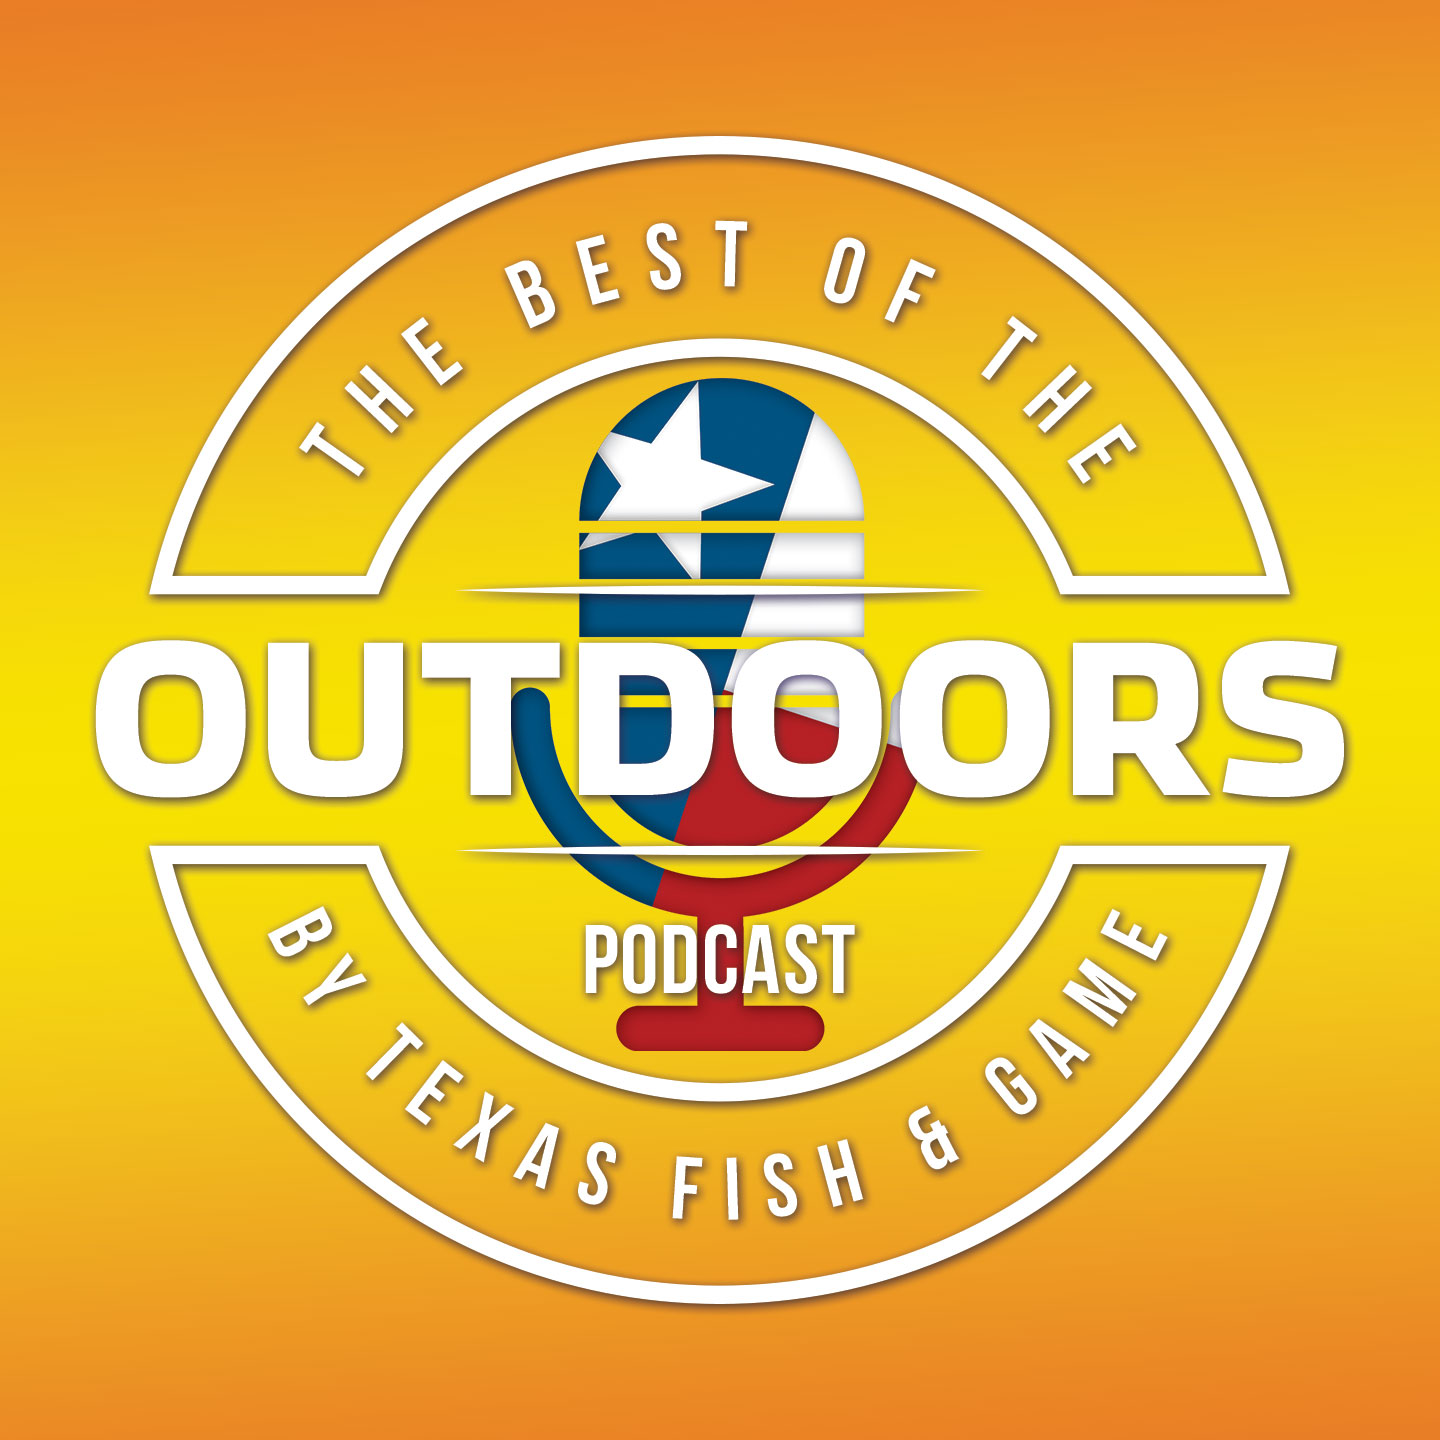 The Best of the Outdoors Podcast